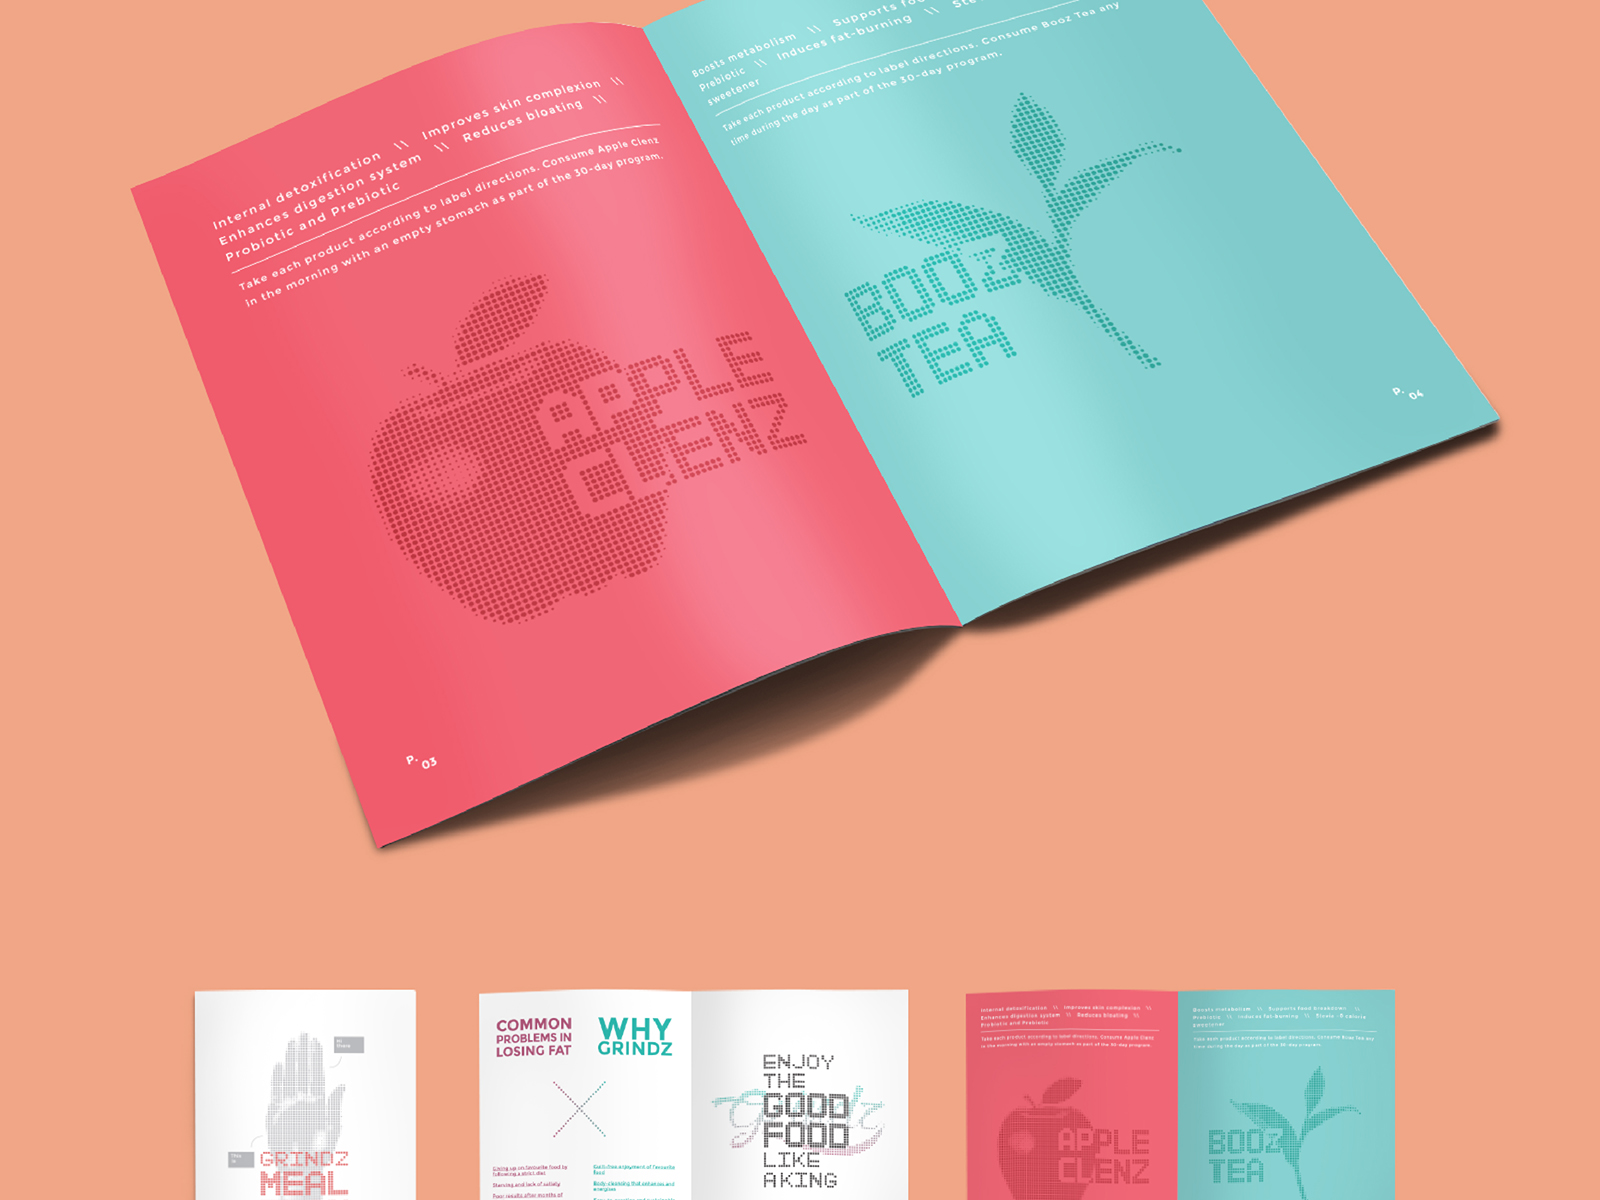 Grindz supplement brand collaterals design of guidebook inner pages featuring their product USP for Apple Clenz and Booz Tea